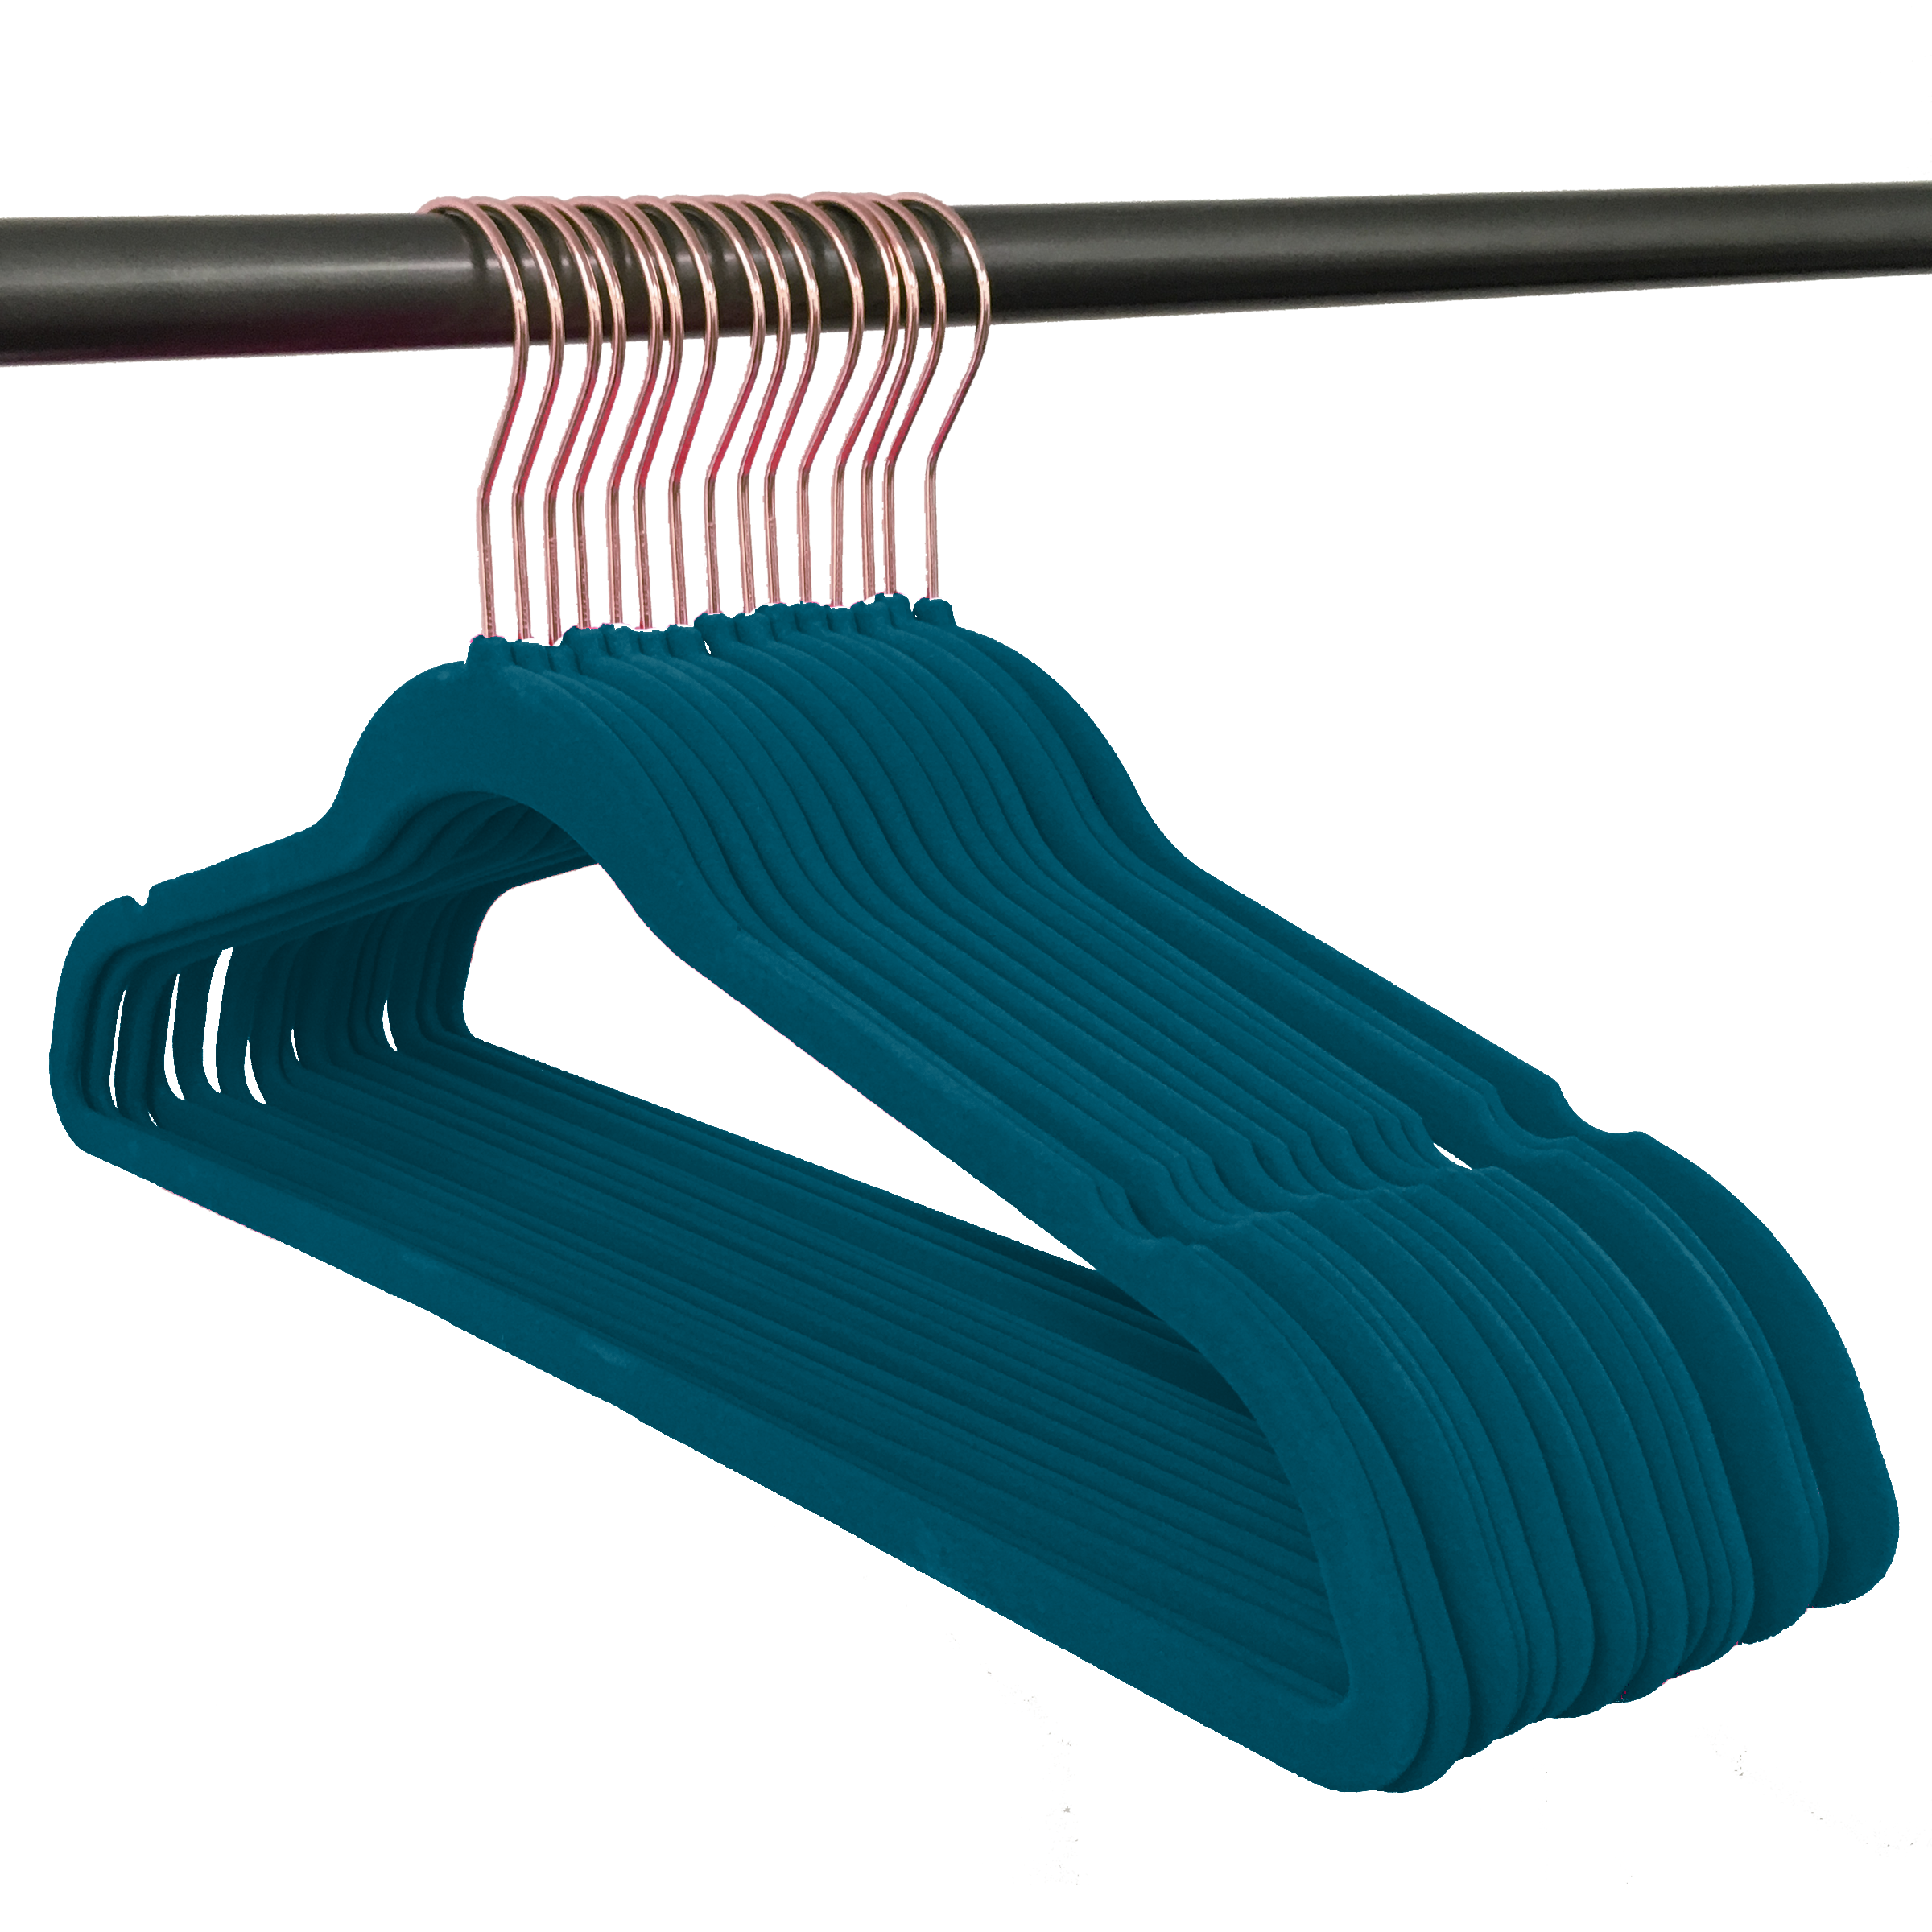 Attractive Closet Complete 50 Pack Velvet Hangers; Peacock With Rose Gold Hook